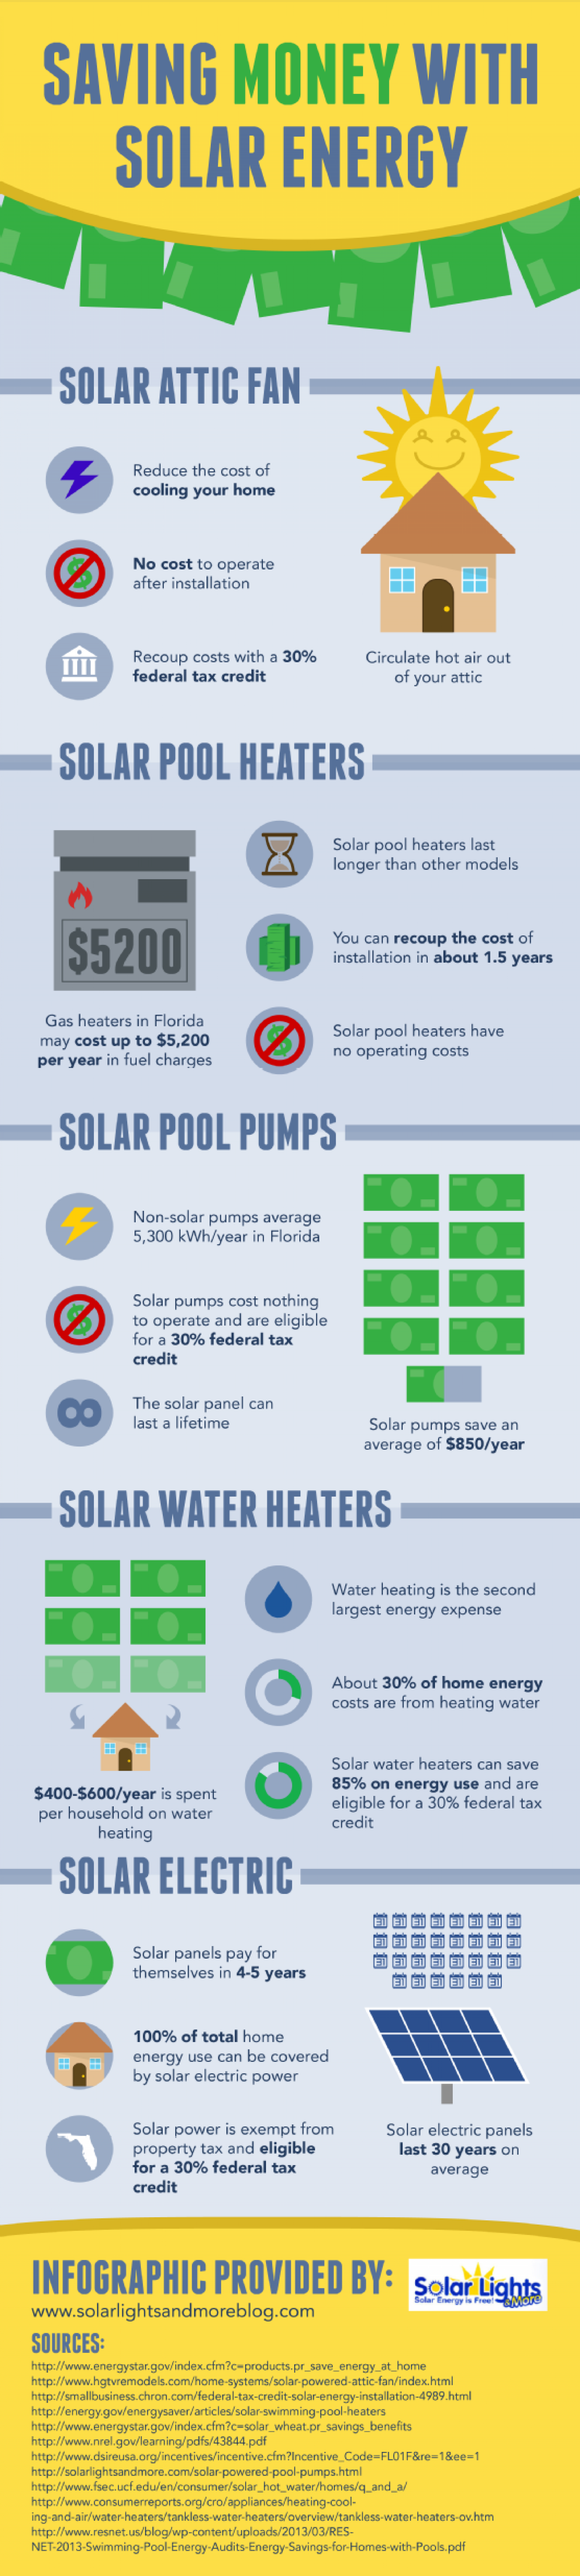 Solar Lights & More Infographic